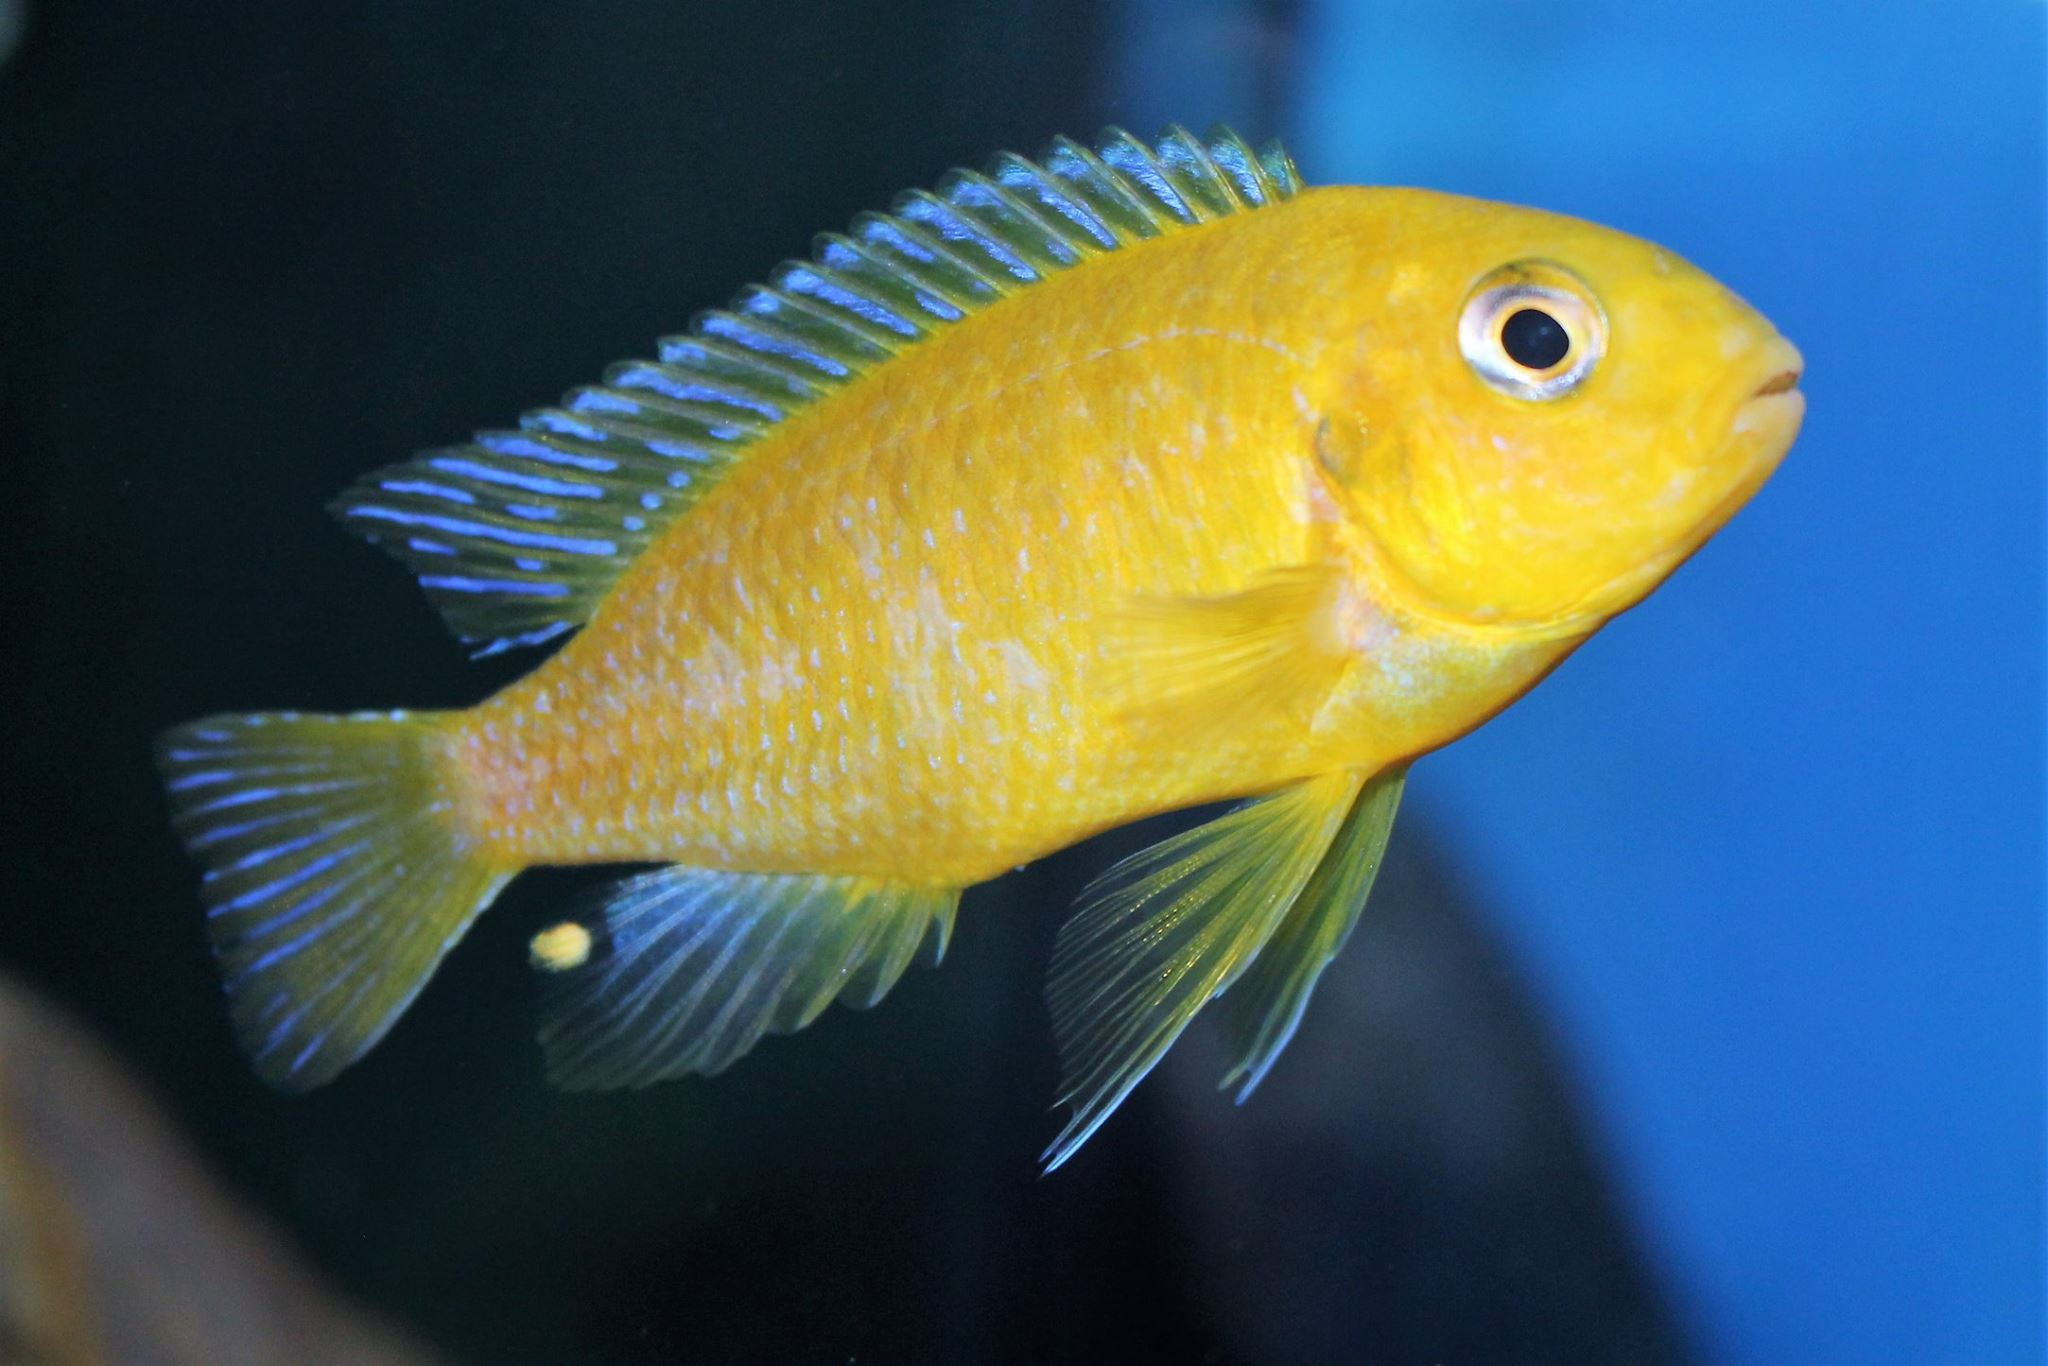 Tropheops macrophthalmus chitimba gold Mnnchen   Jan Steger